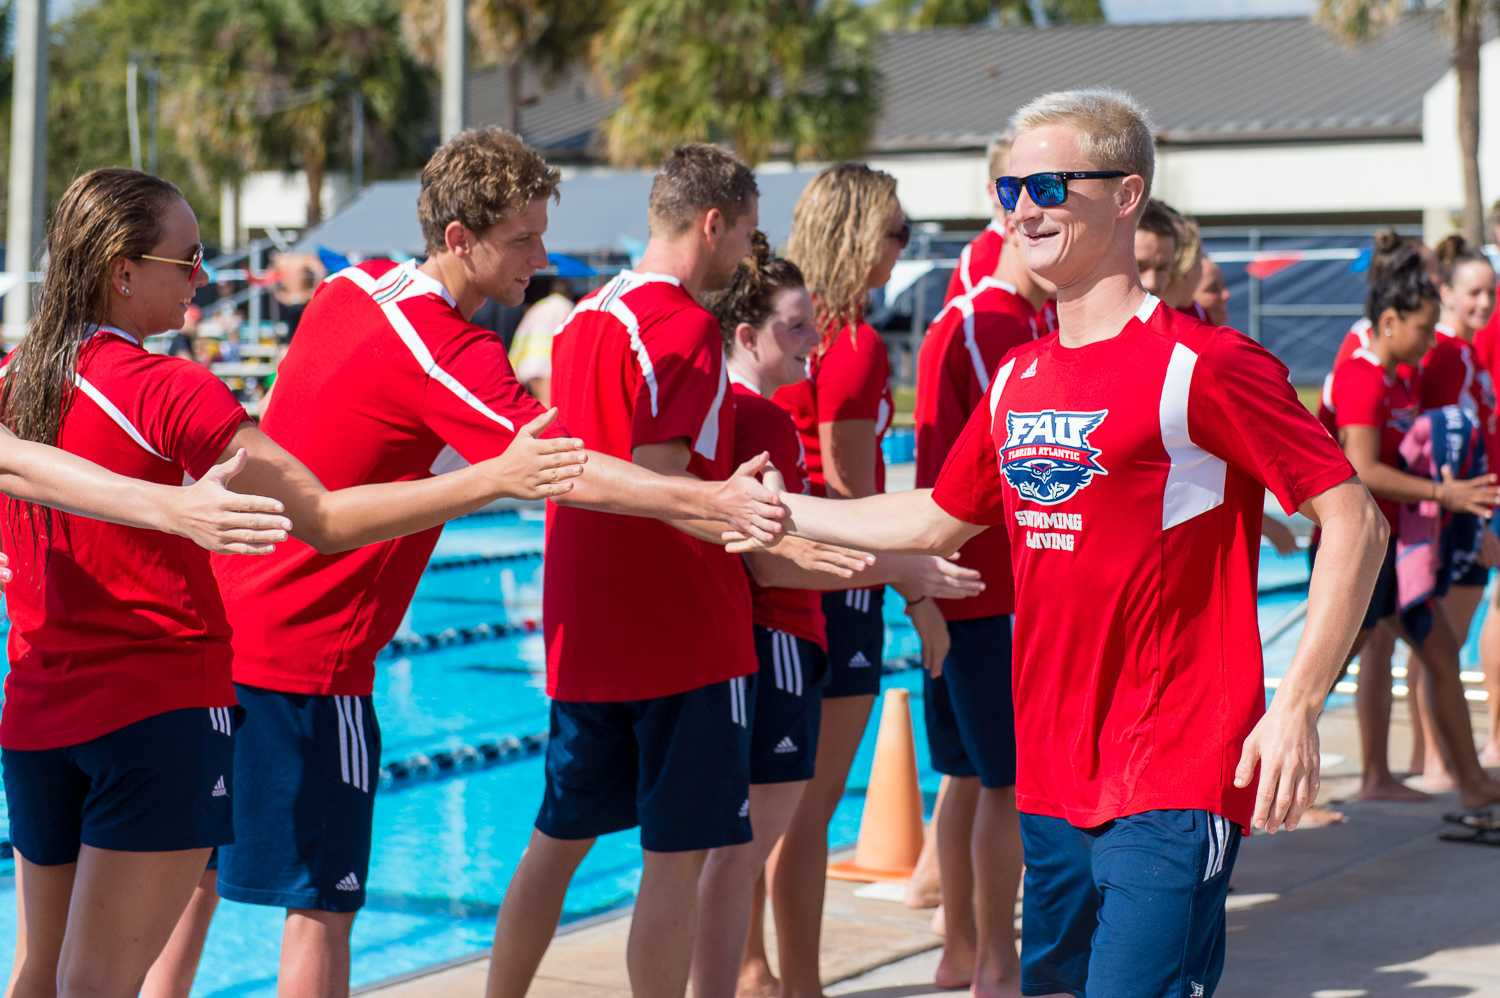 Team captain Richard Andrews (right) from FAU high-fives his teammates during the senior send-off ceremony prior to the start of the meet.  Andrews won the men's 200 freestyle with a time of 1:42.17.